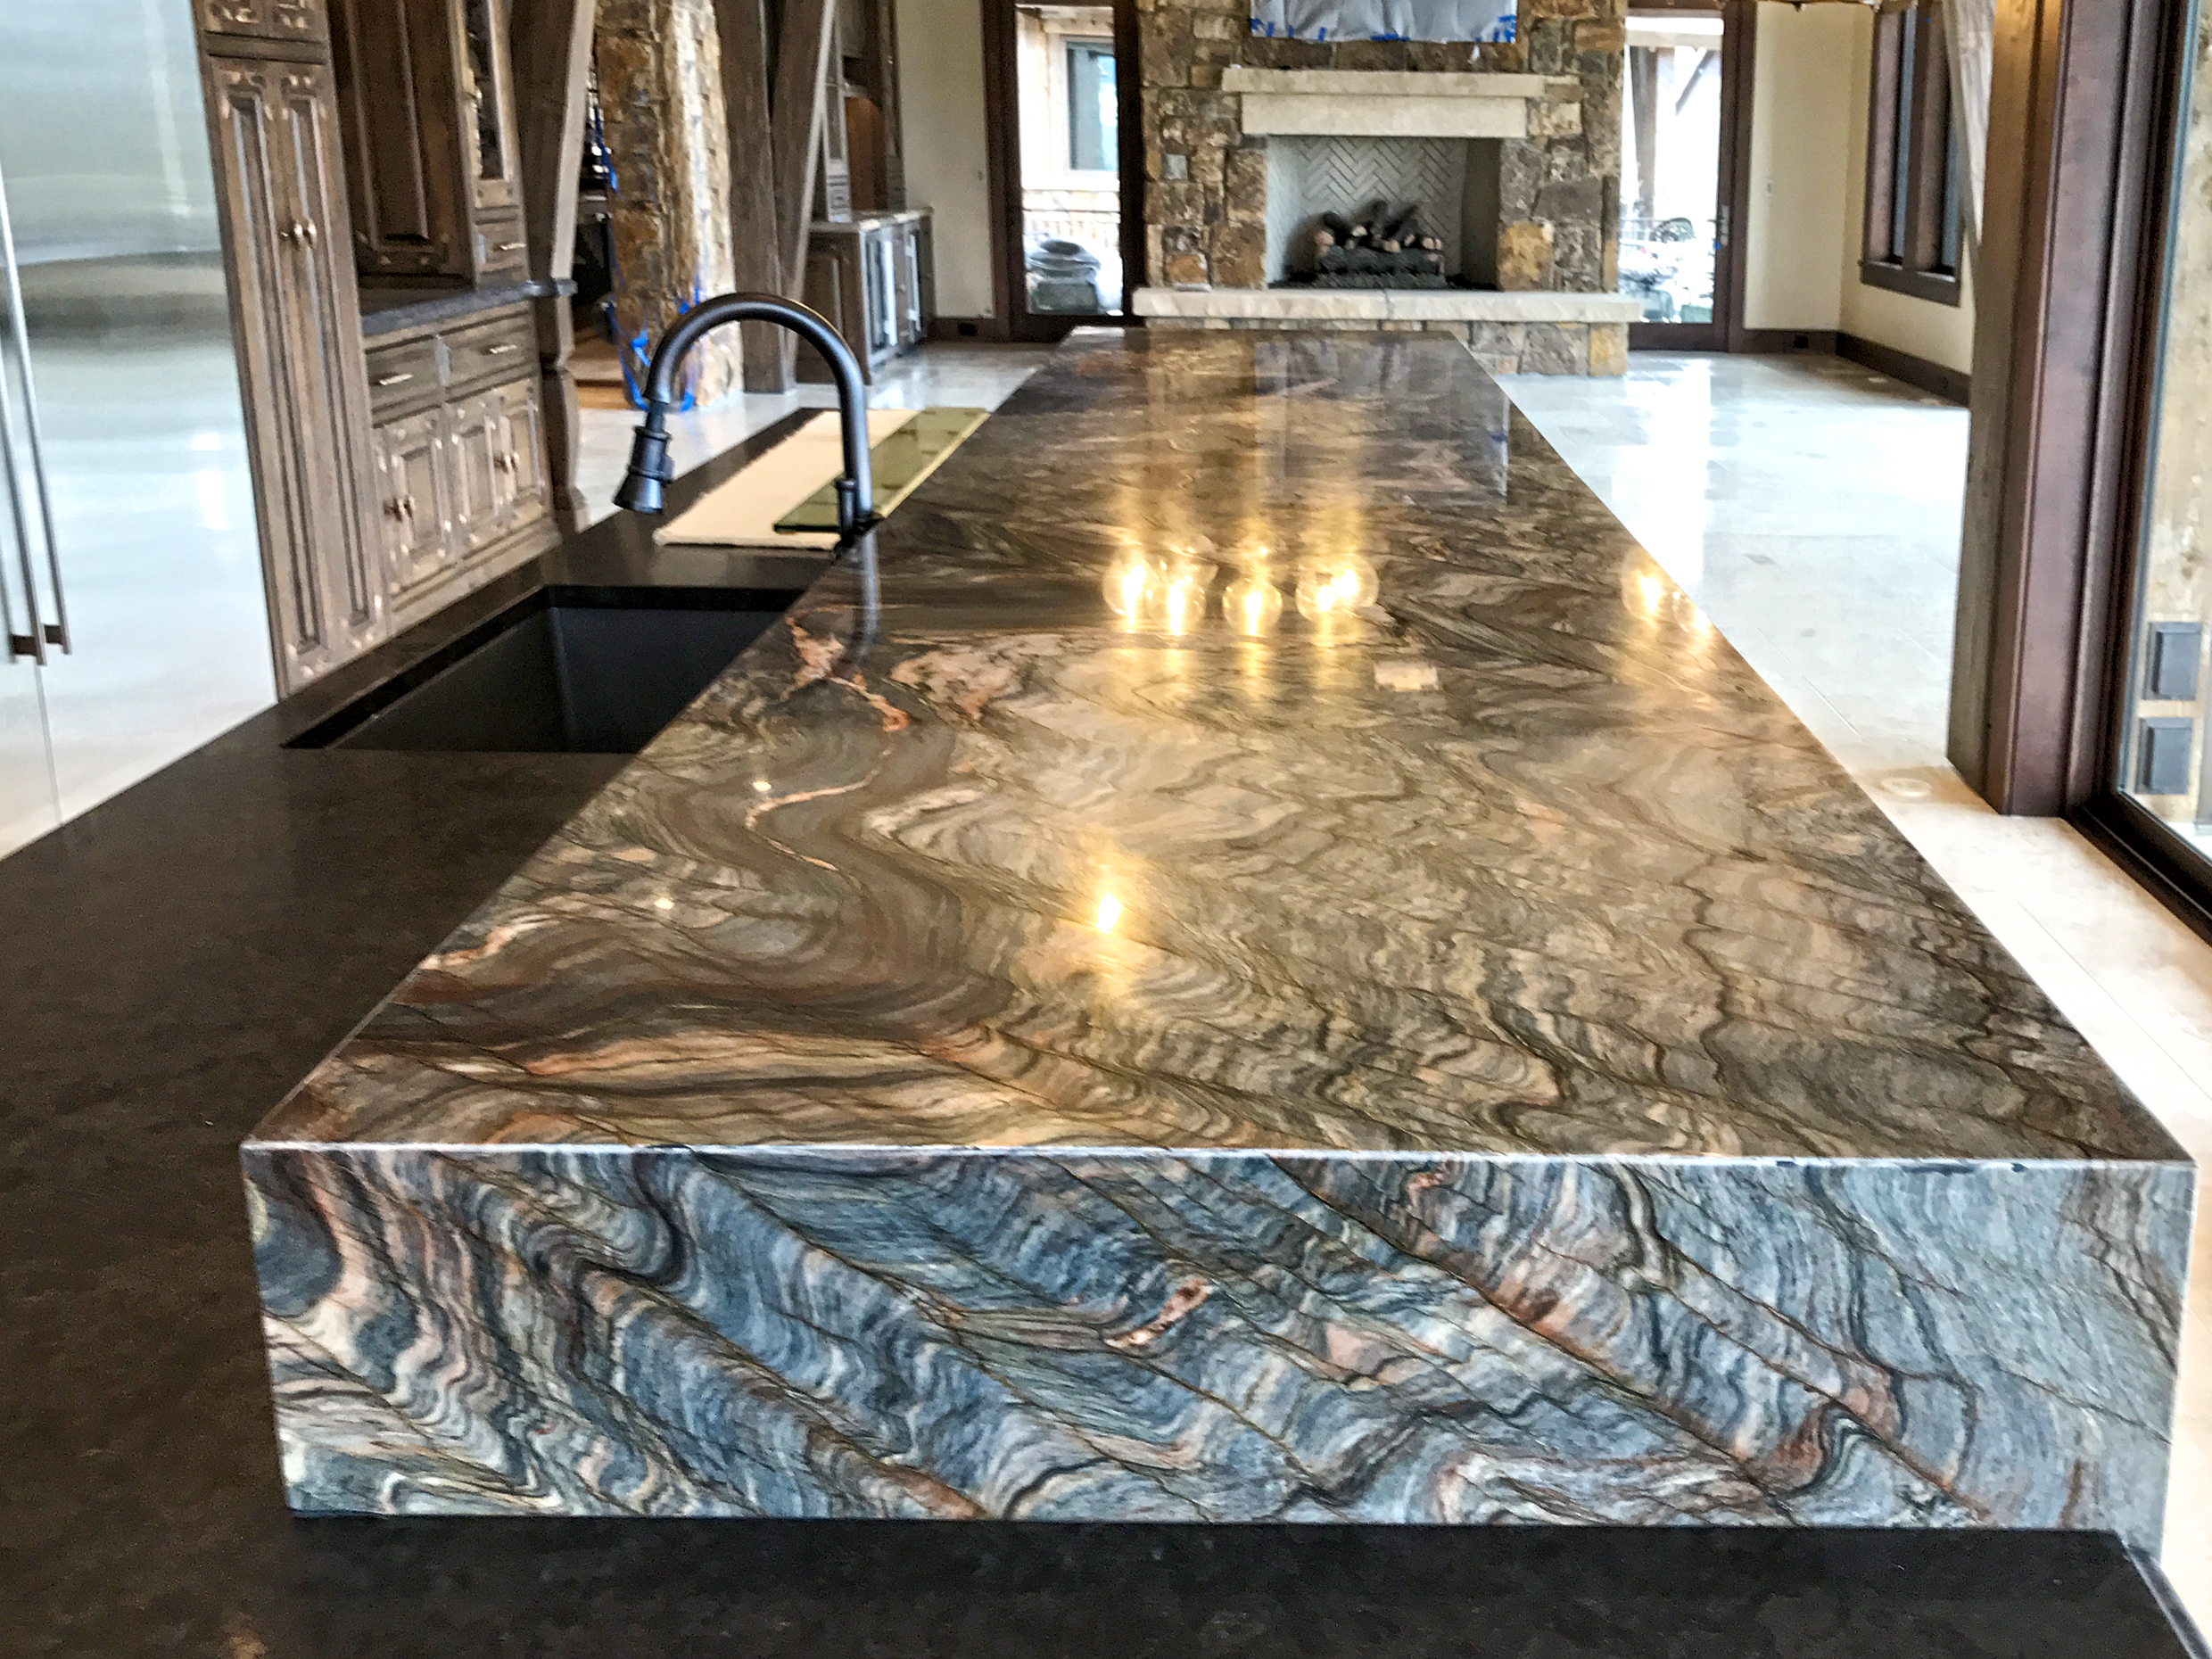 Fusion Granite Itchen Island 6cm Mitred Waterfall Edges Mirrored Flat Polish Edge